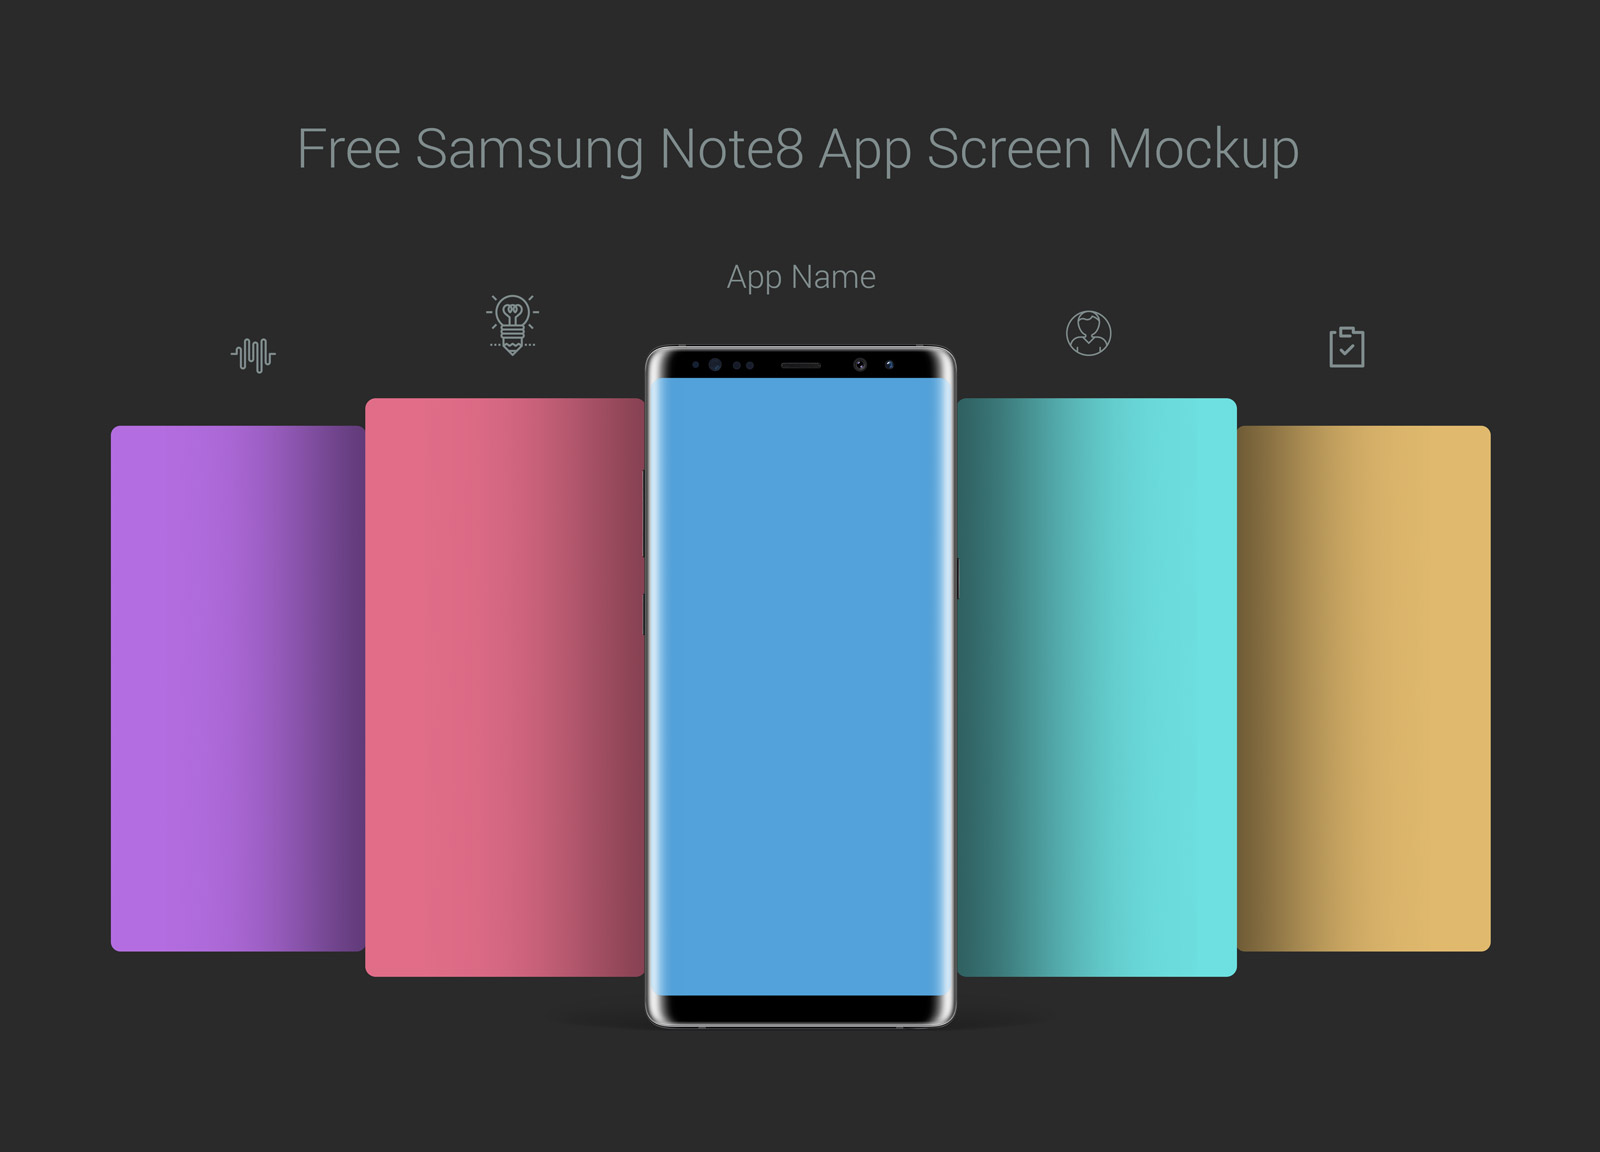 Free-Samsung-Galaxy-Note8-App-Screen-Mockup-PSD-2